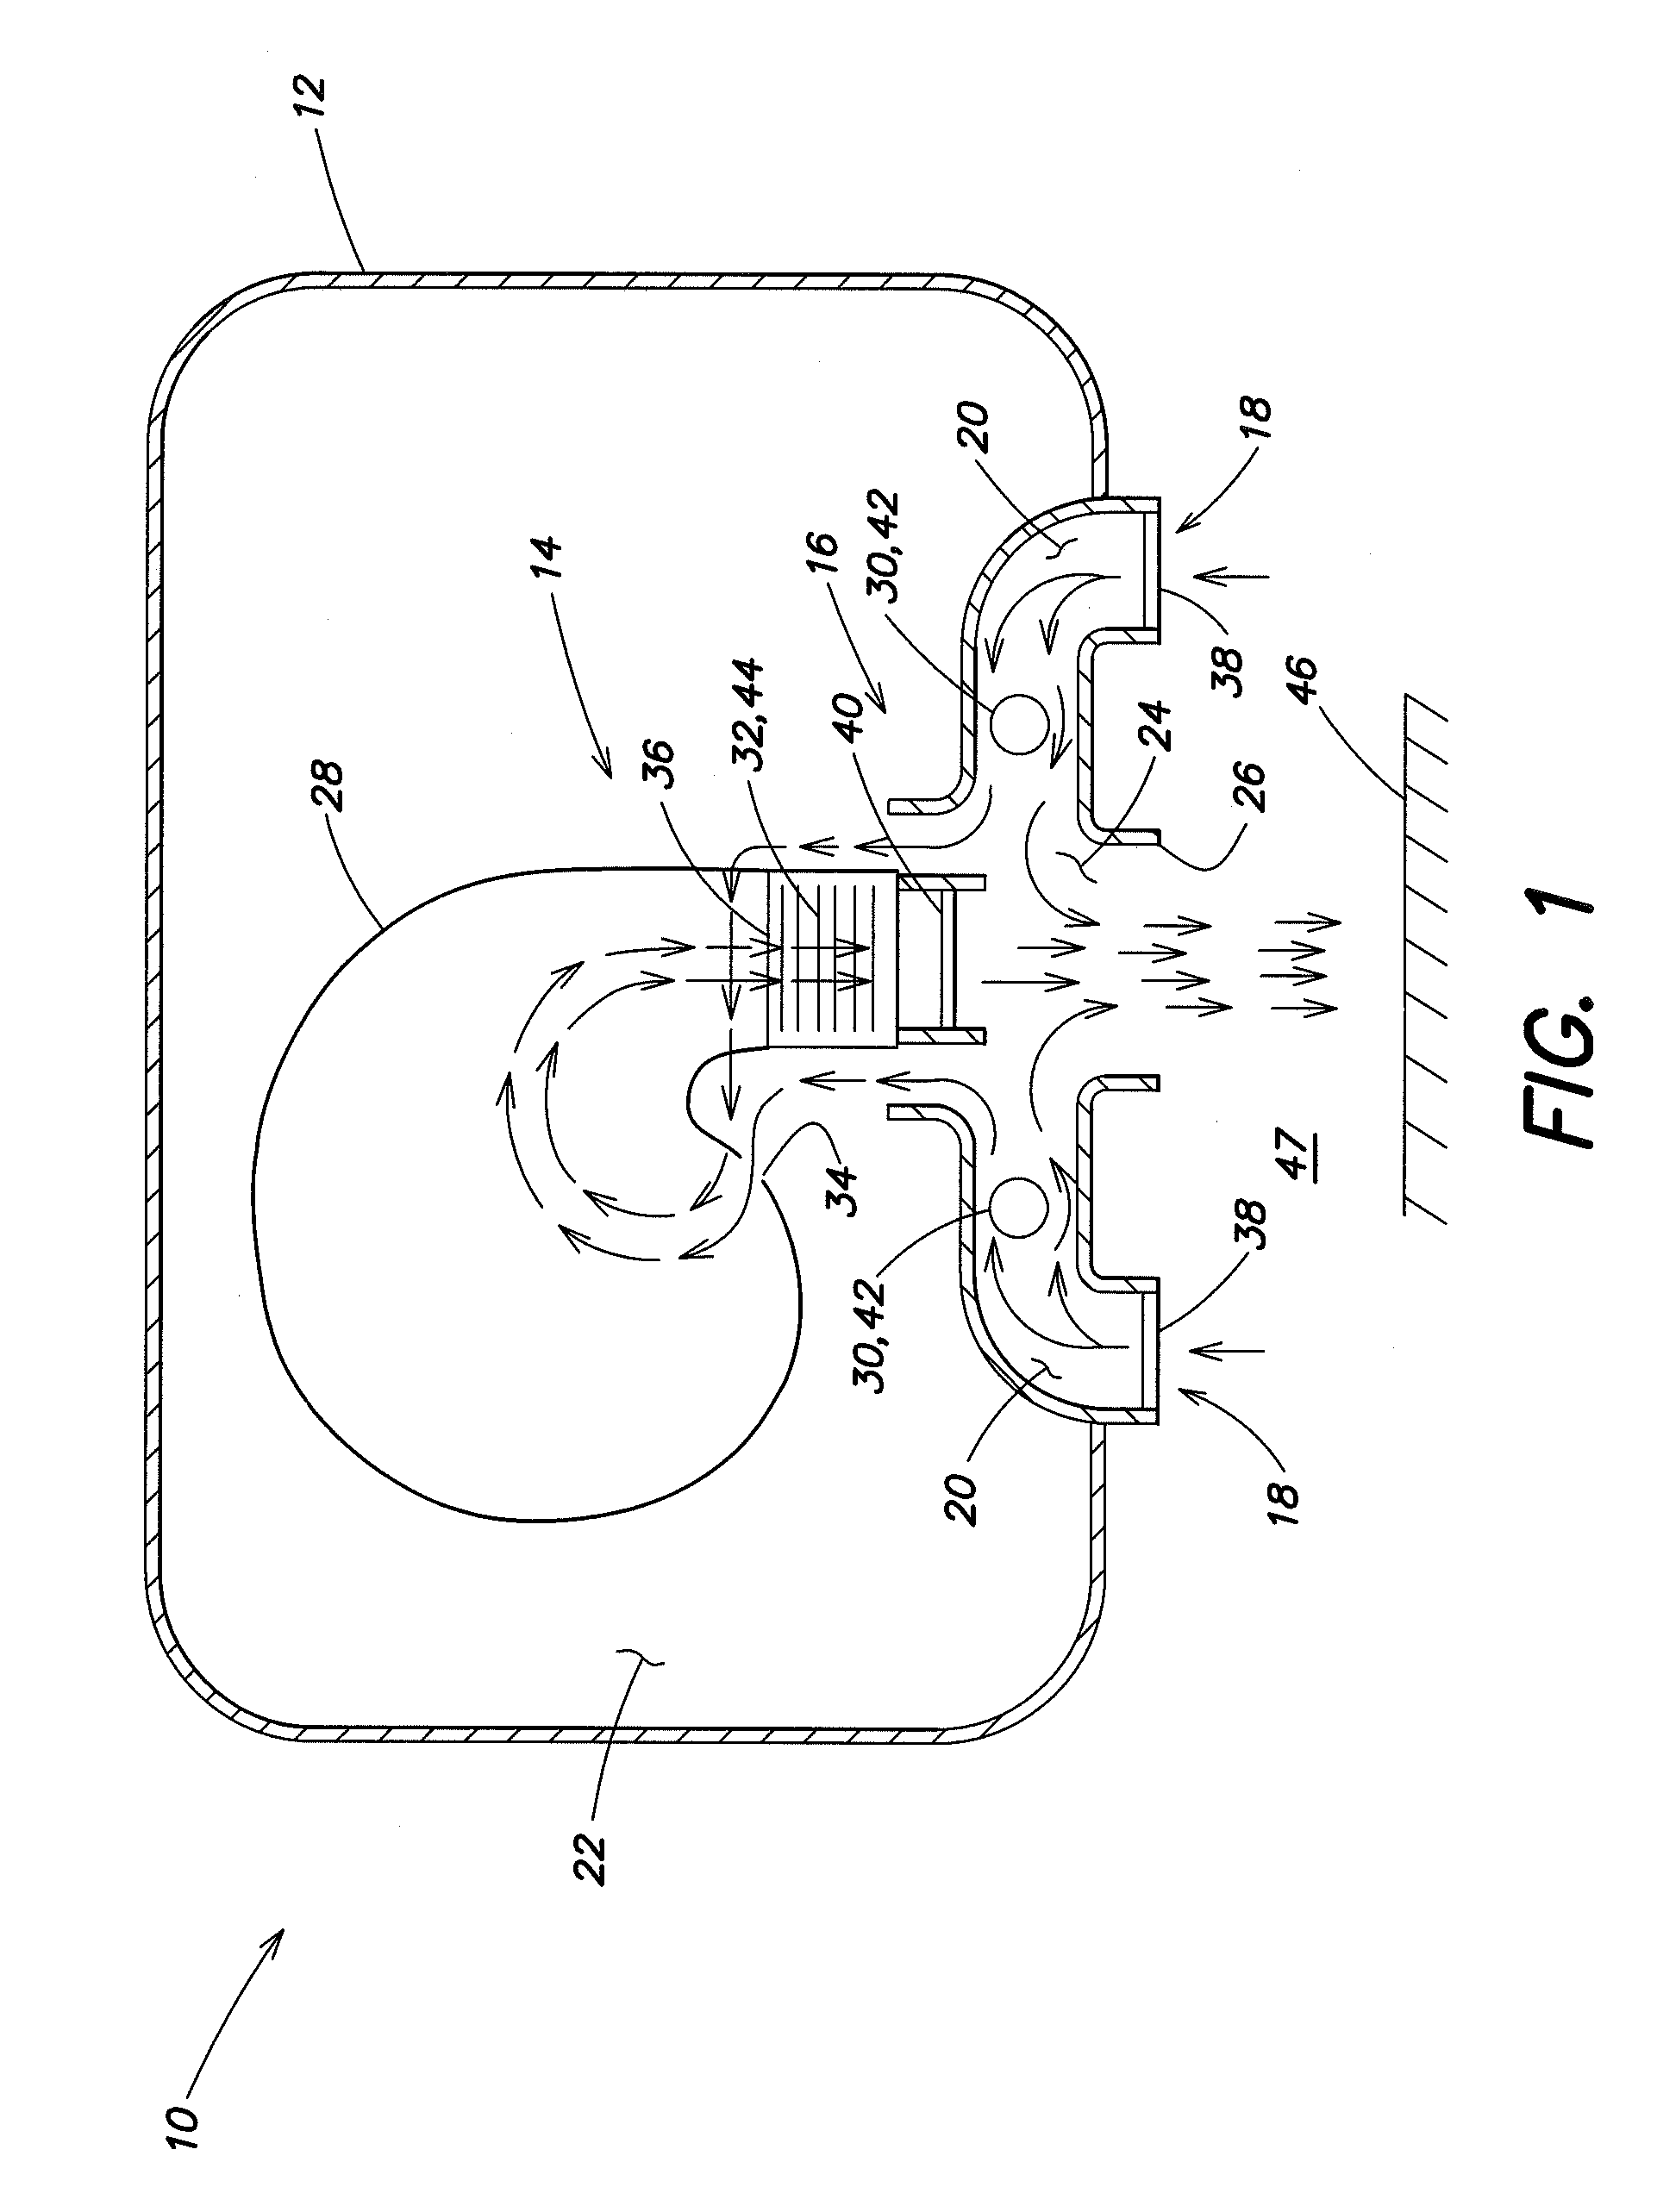 patent us20130031799 - sanitizing hand dryer